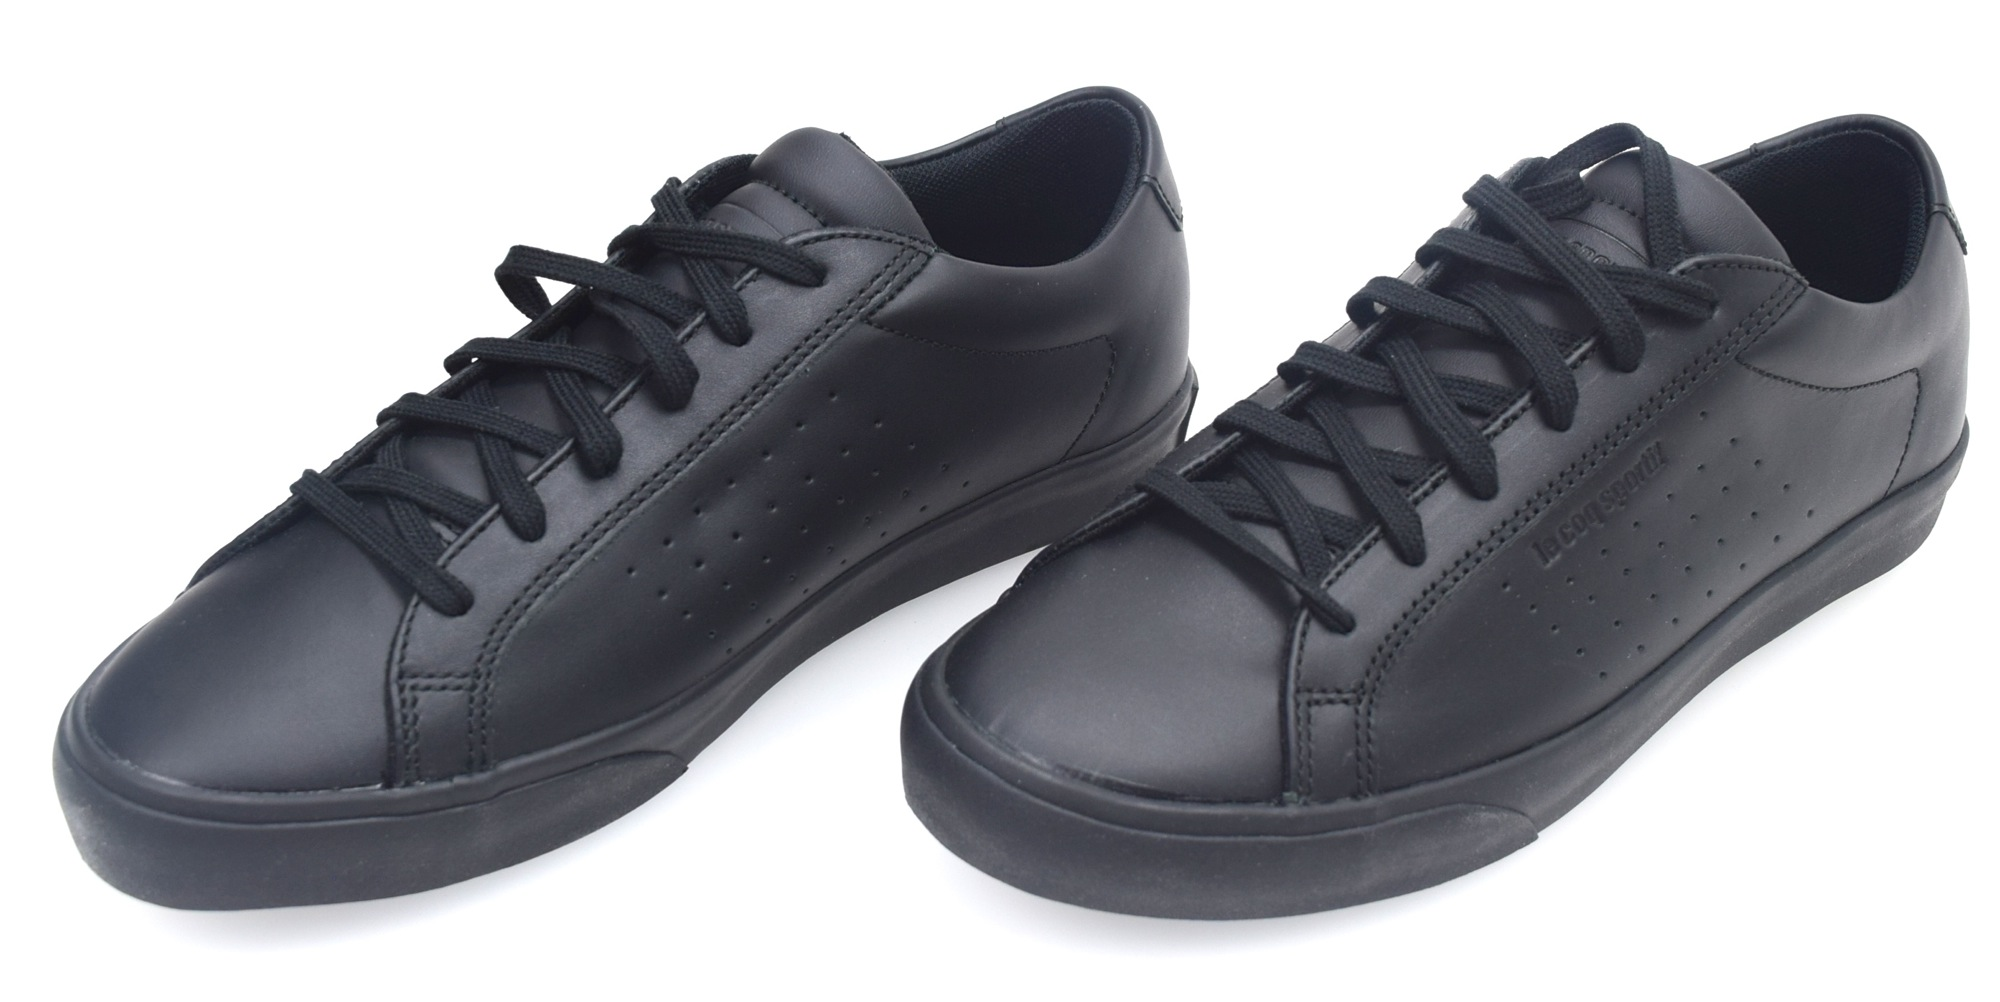 le coq sportif man sneaker shoes black or white leather code prestige court lea ebay. Black Bedroom Furniture Sets. Home Design Ideas